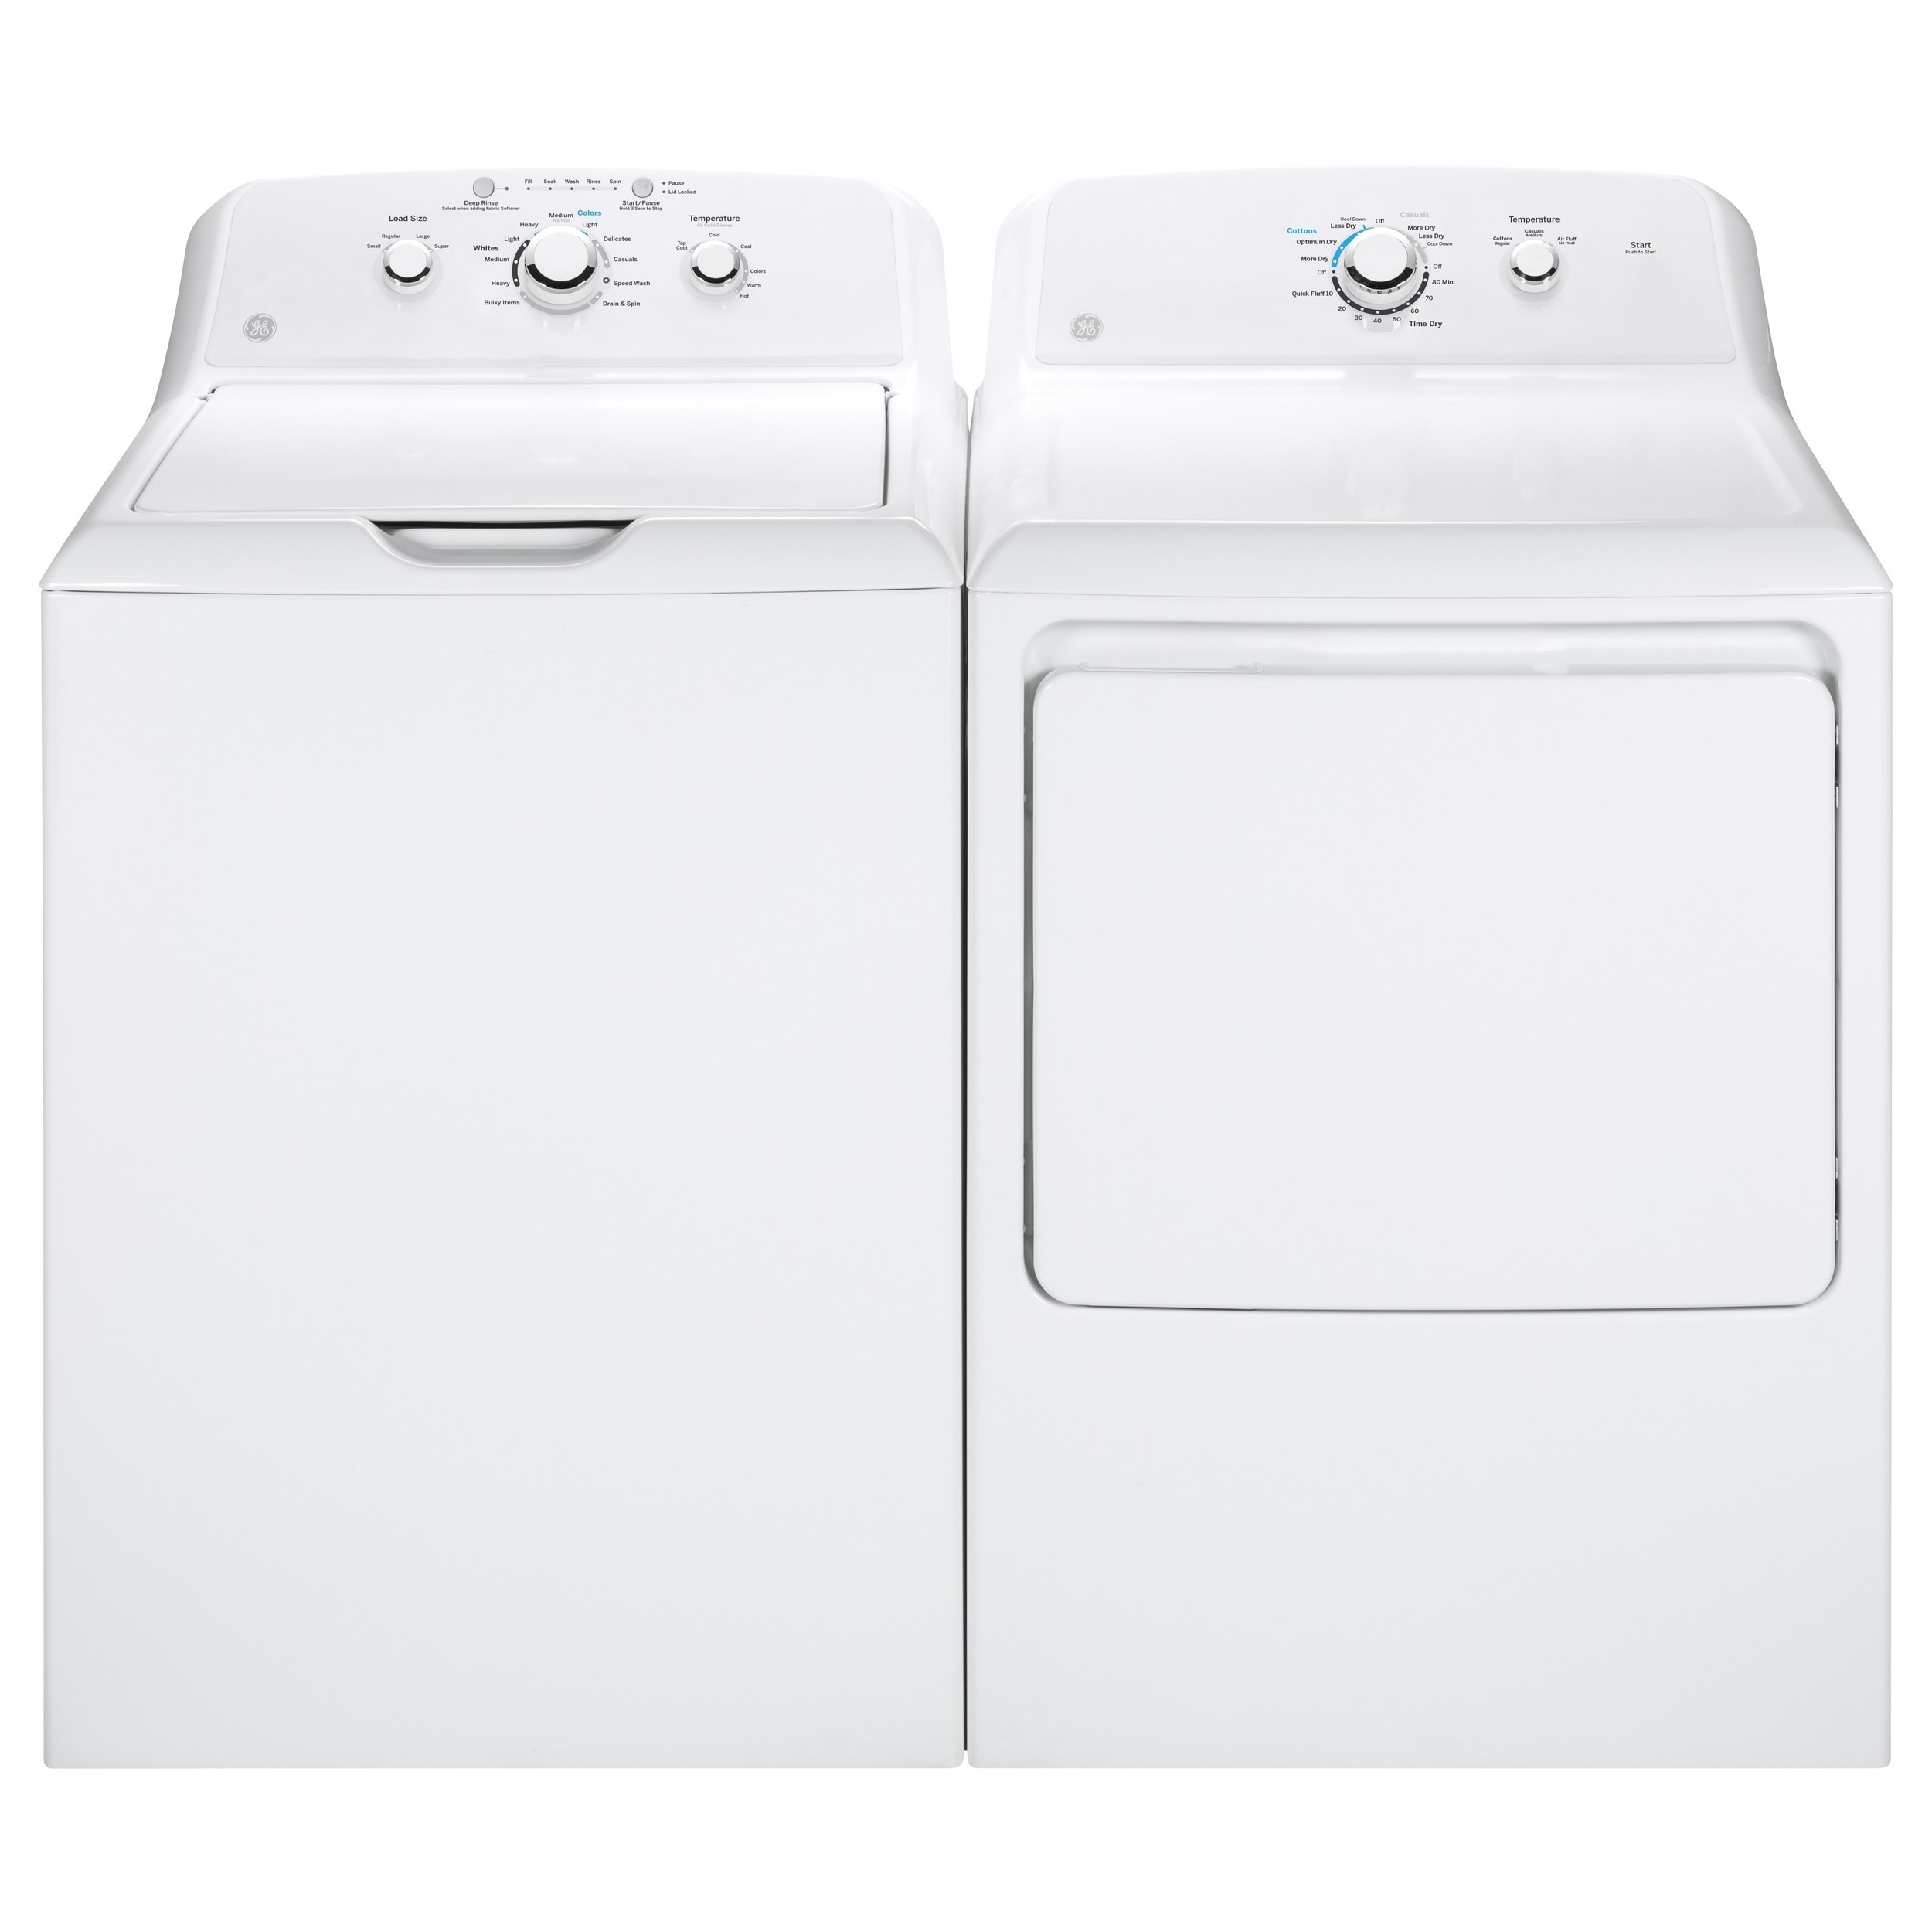 GE Top-load Washer and Electric Dryer Pair (White) (Stain...